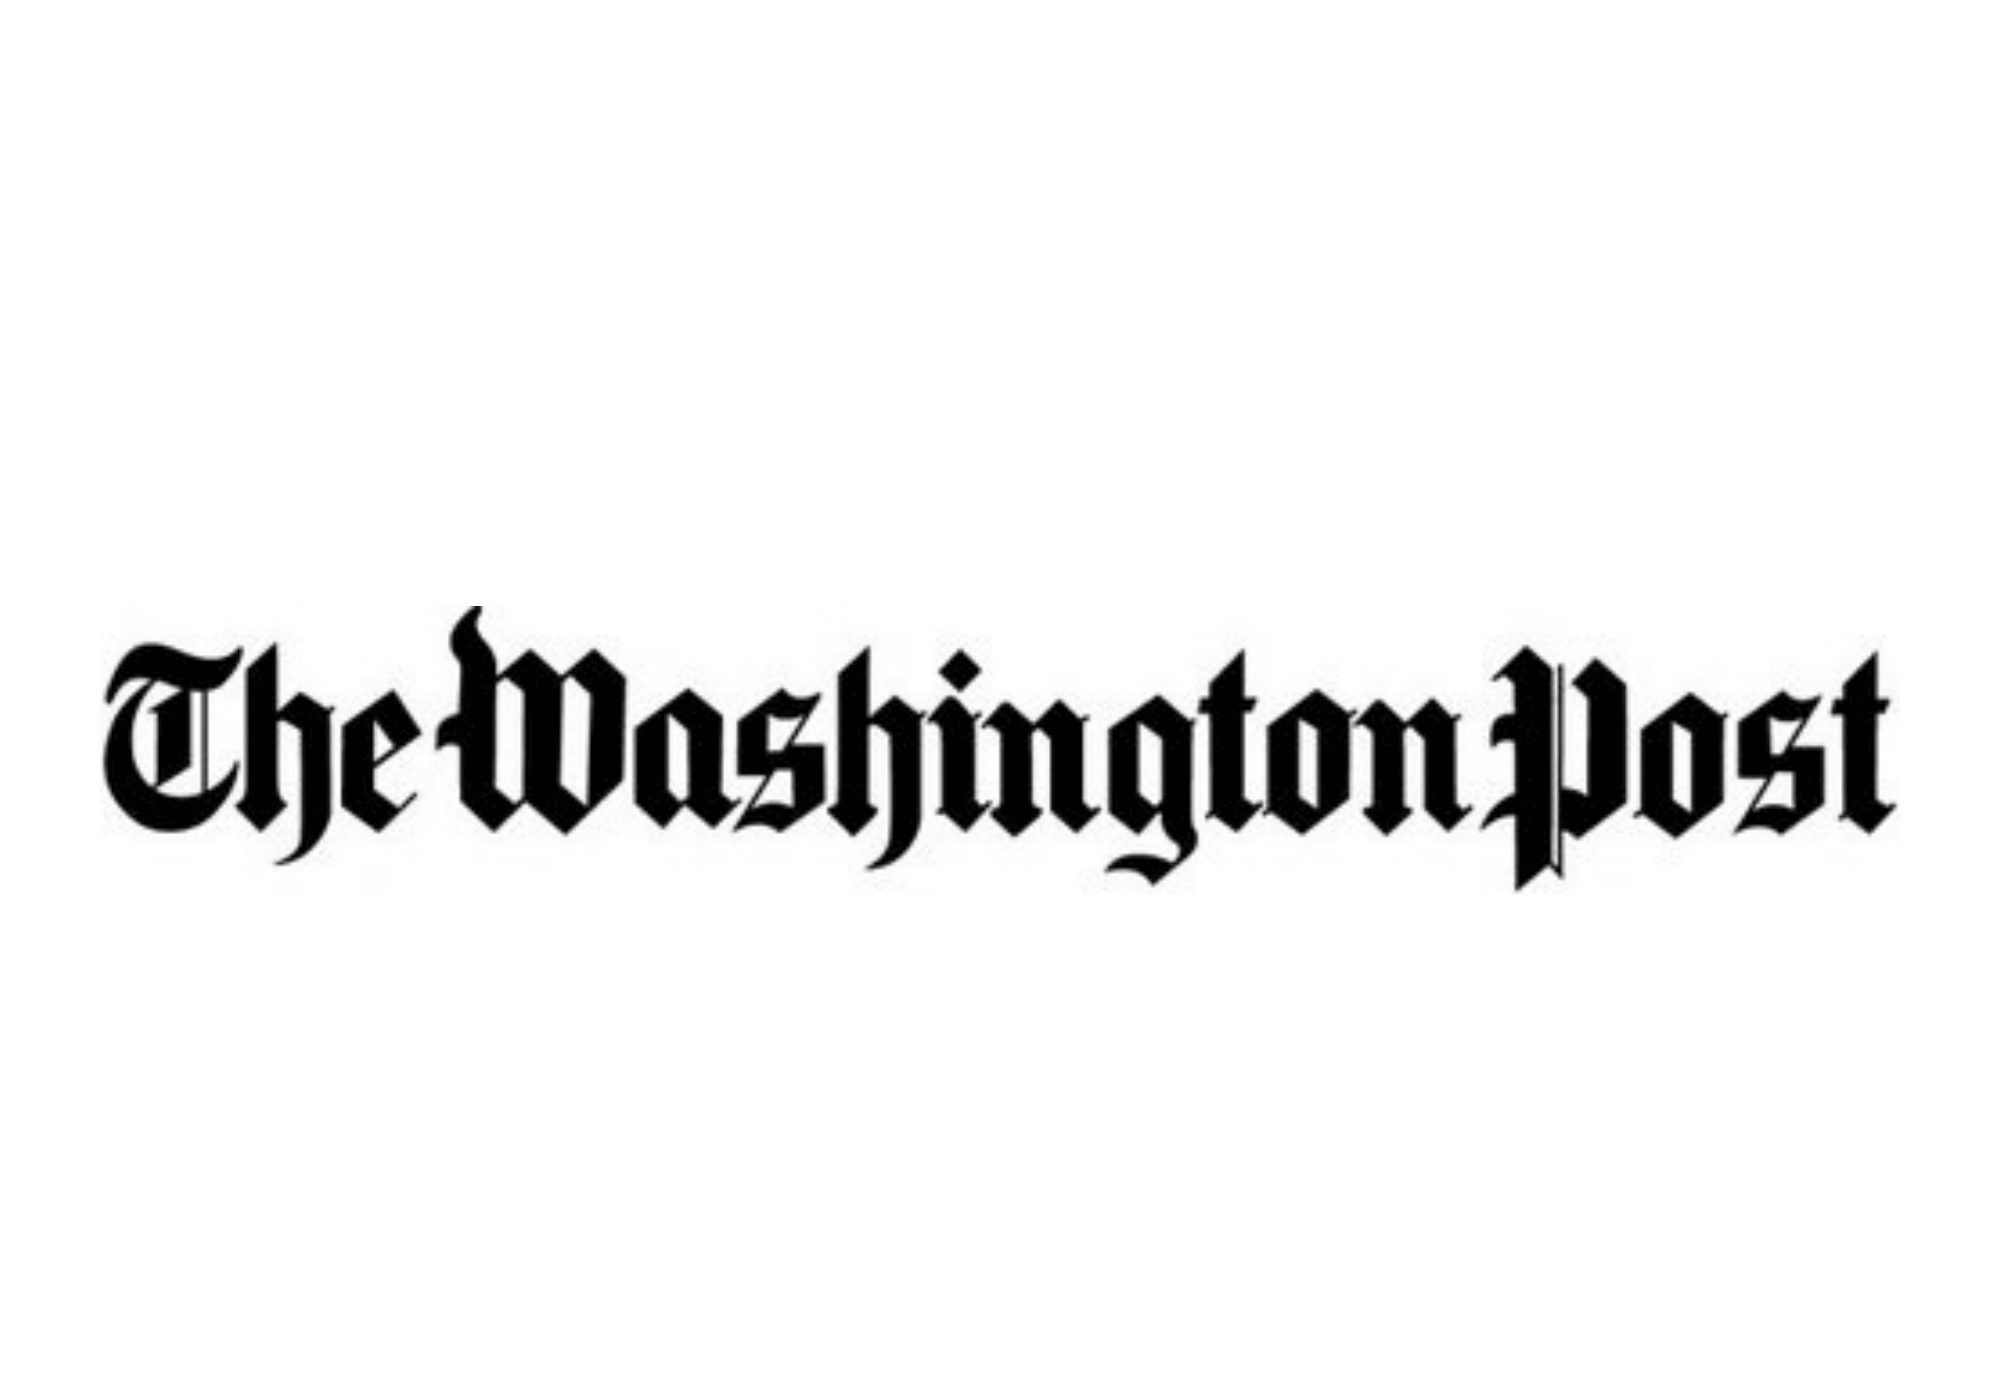 News outlet logo for washingtonpost.com